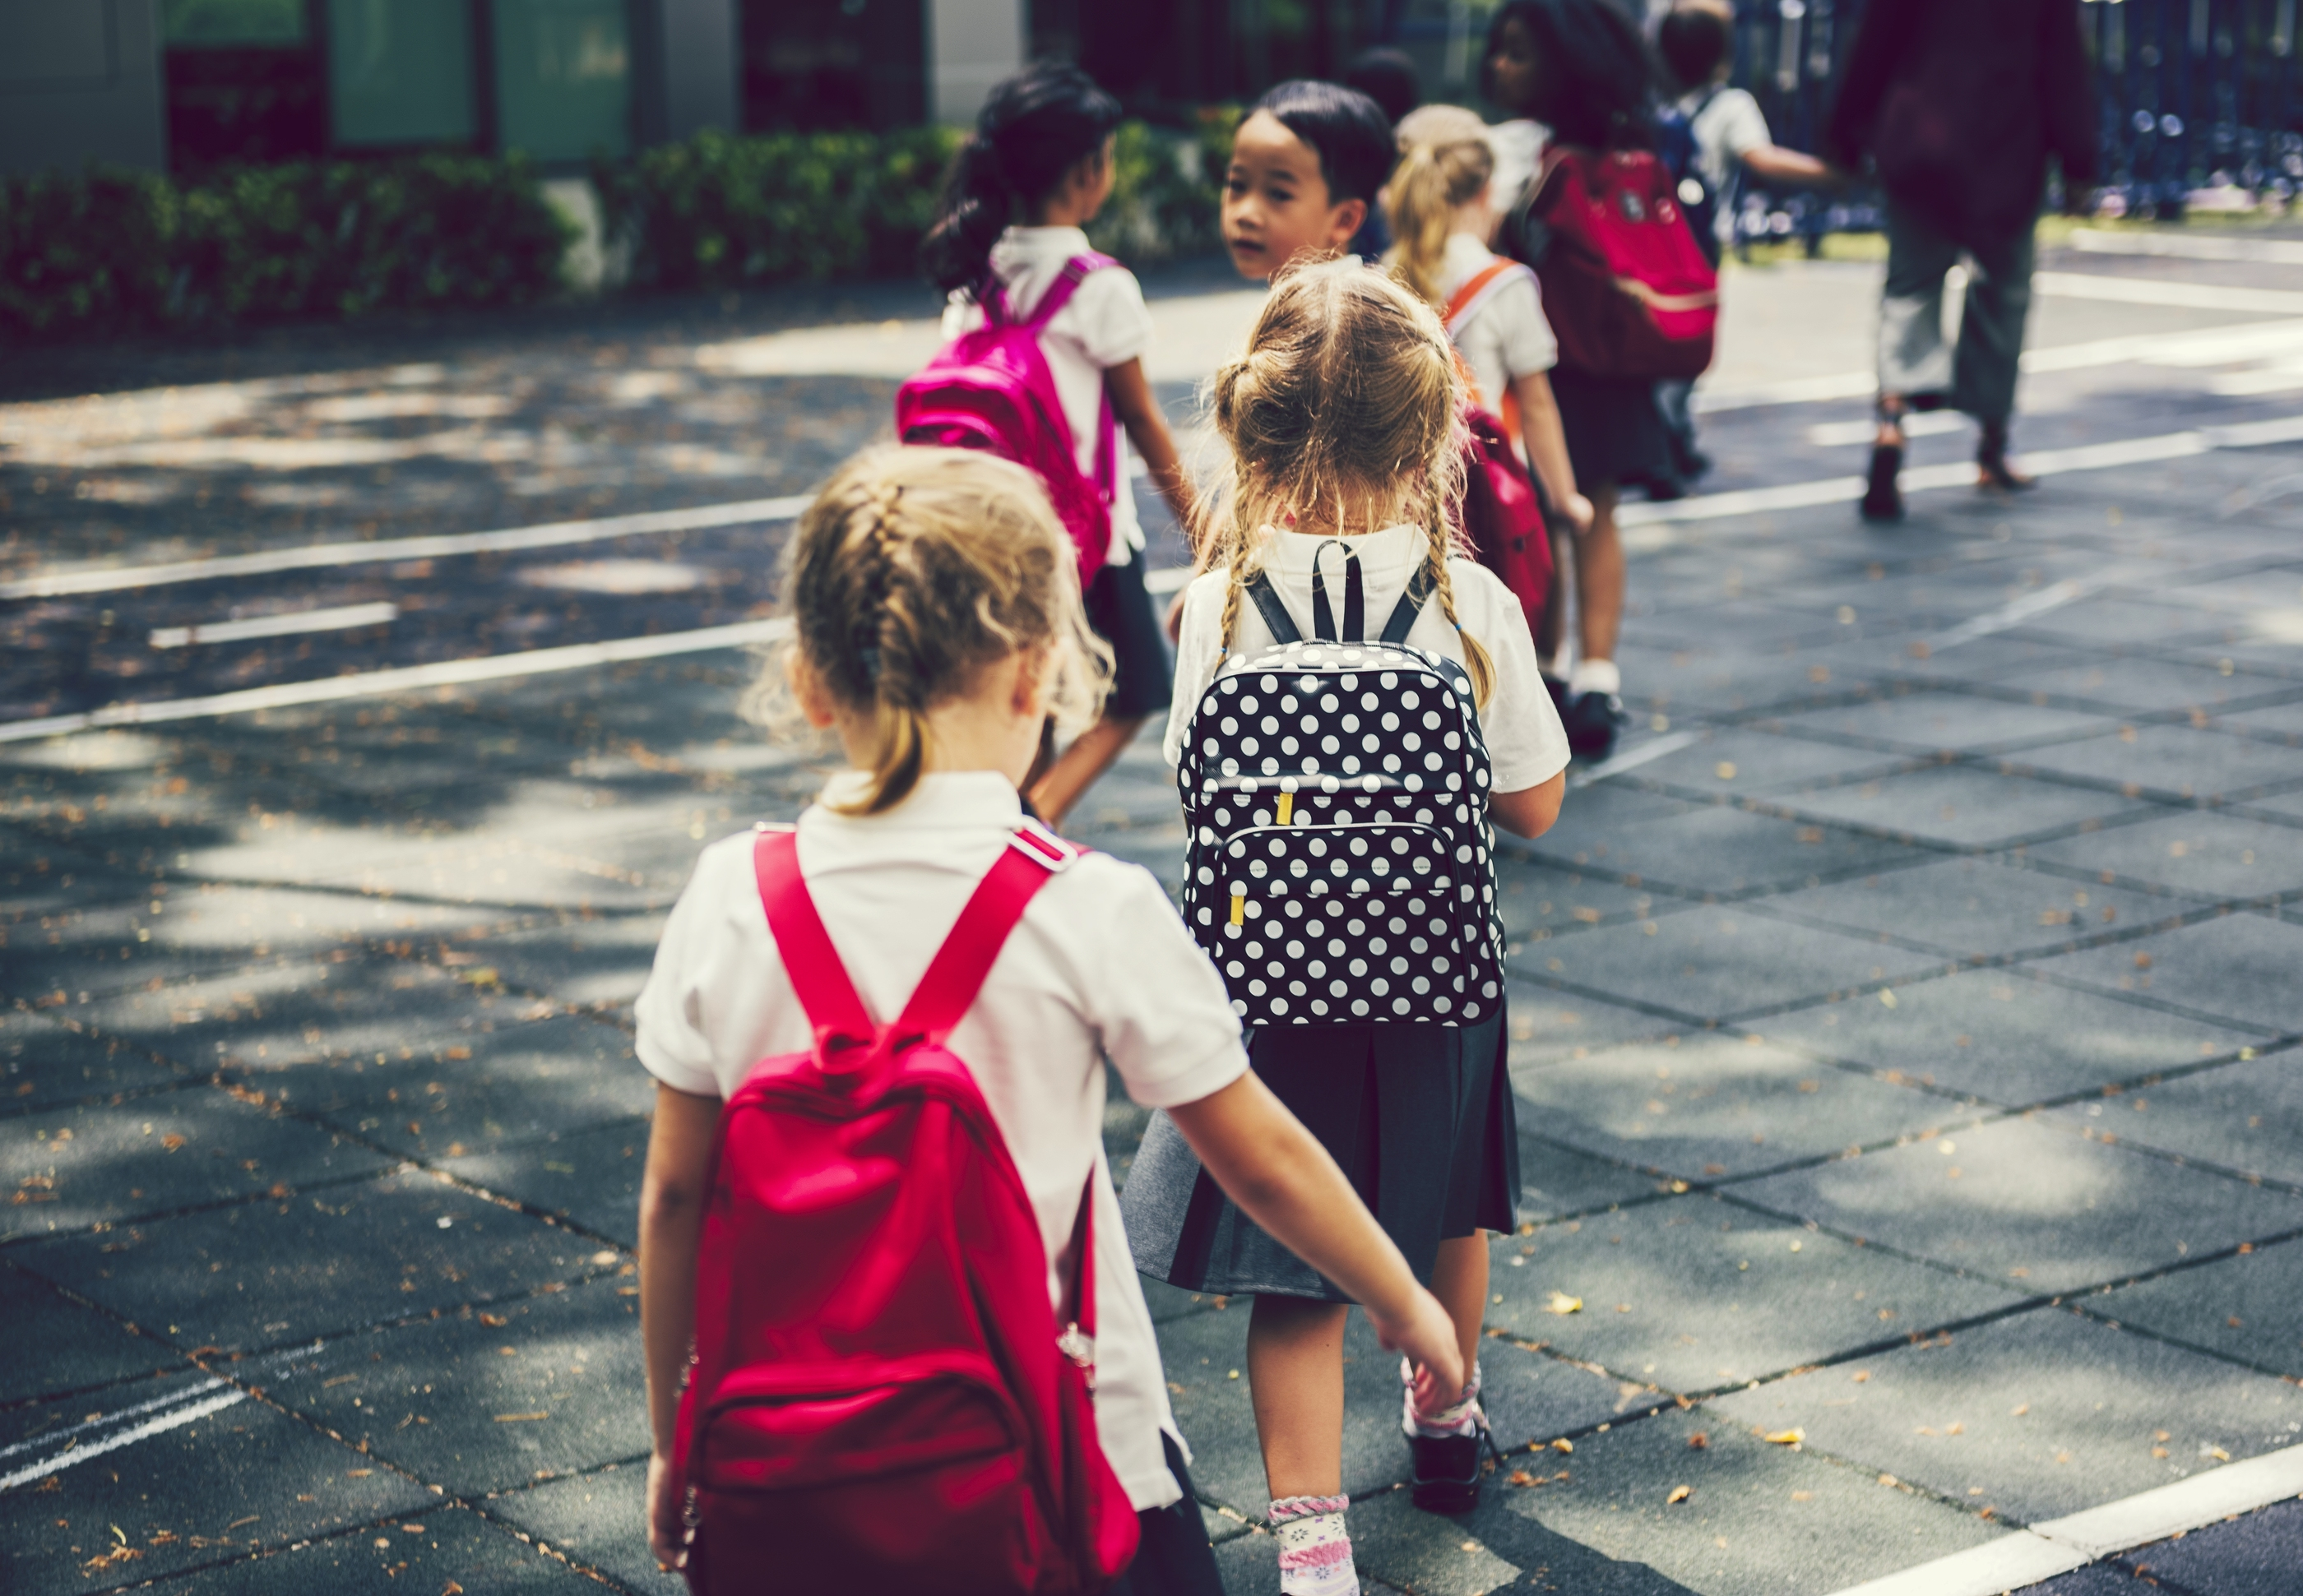 Back to school : post-vacation depression also affects children